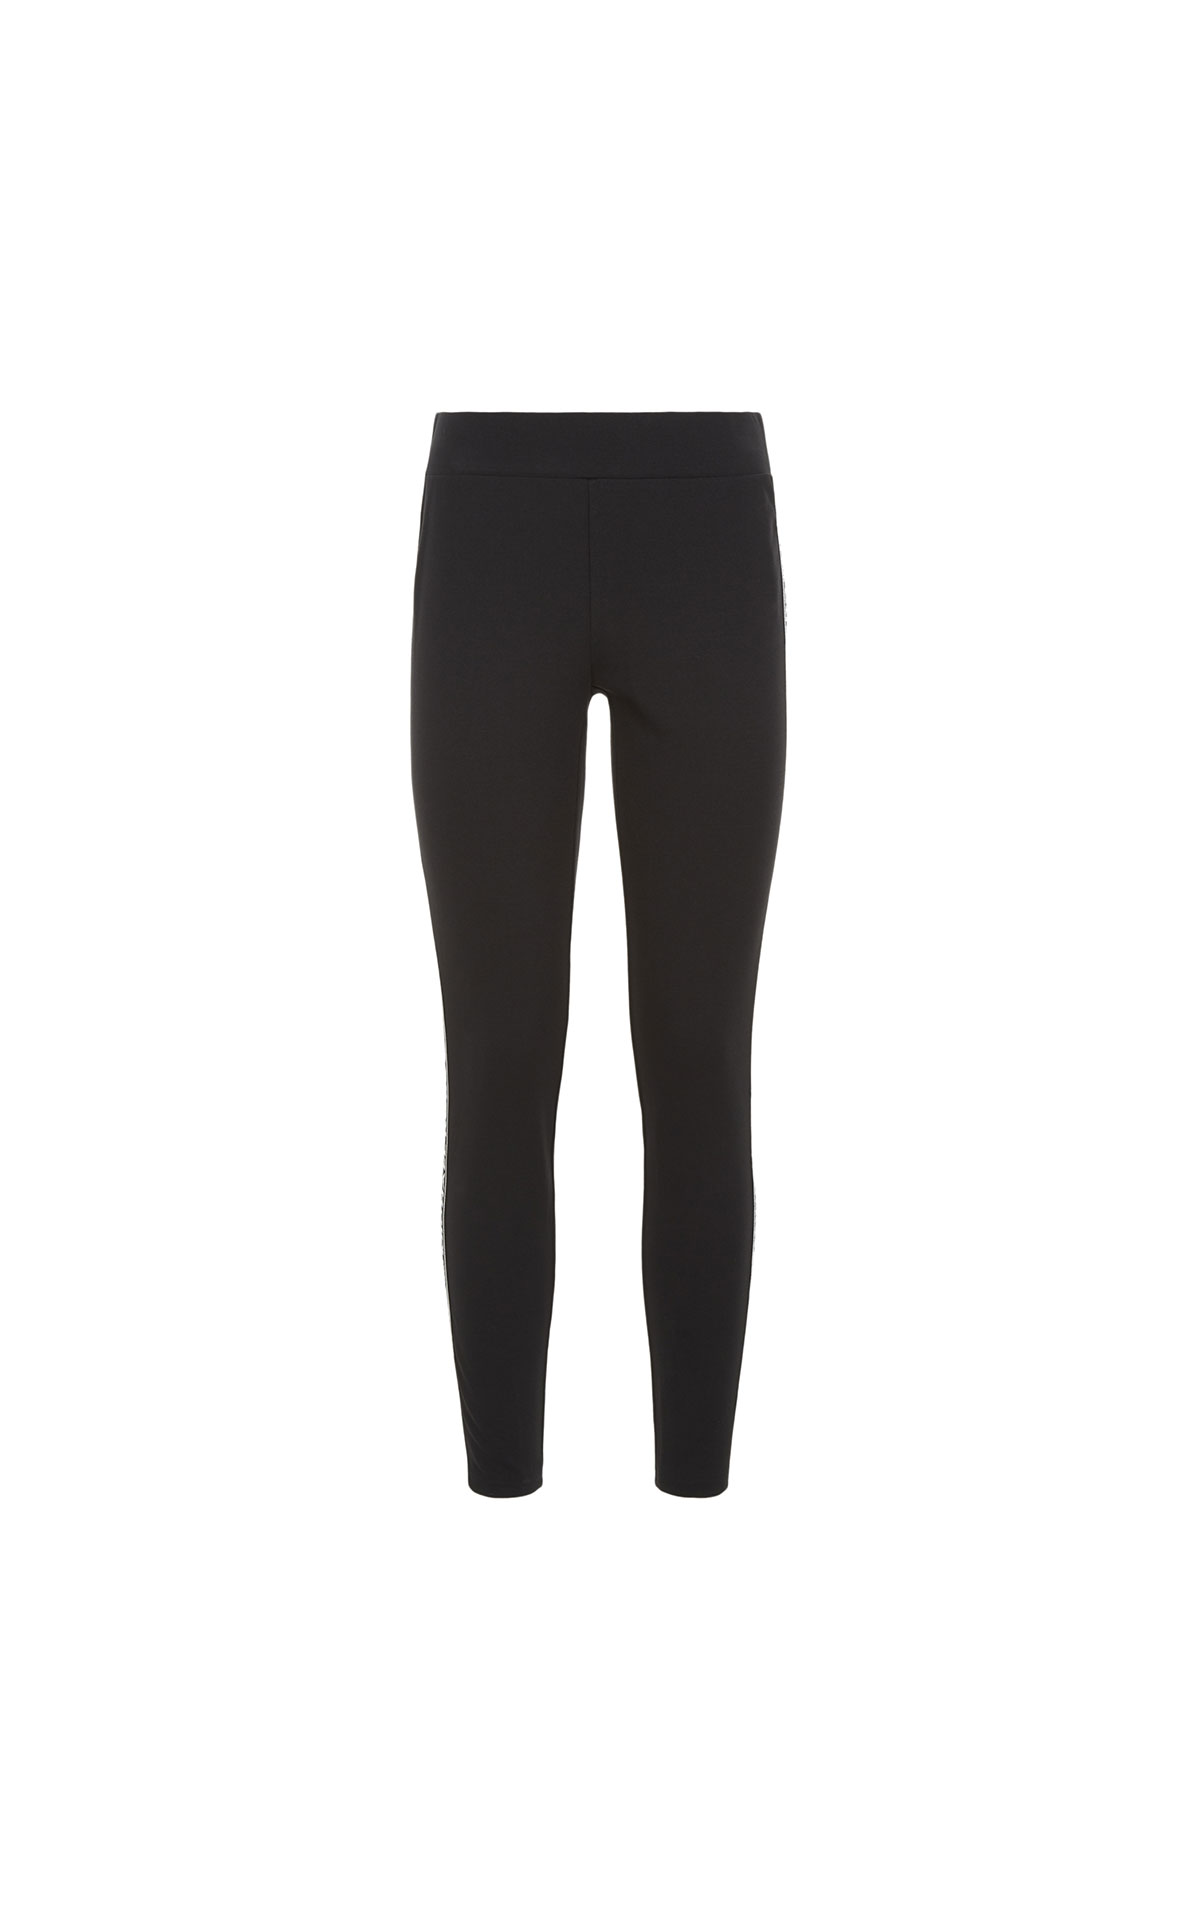 Michael Kors Logside panel legging at The Bicester Village Shopping Collection